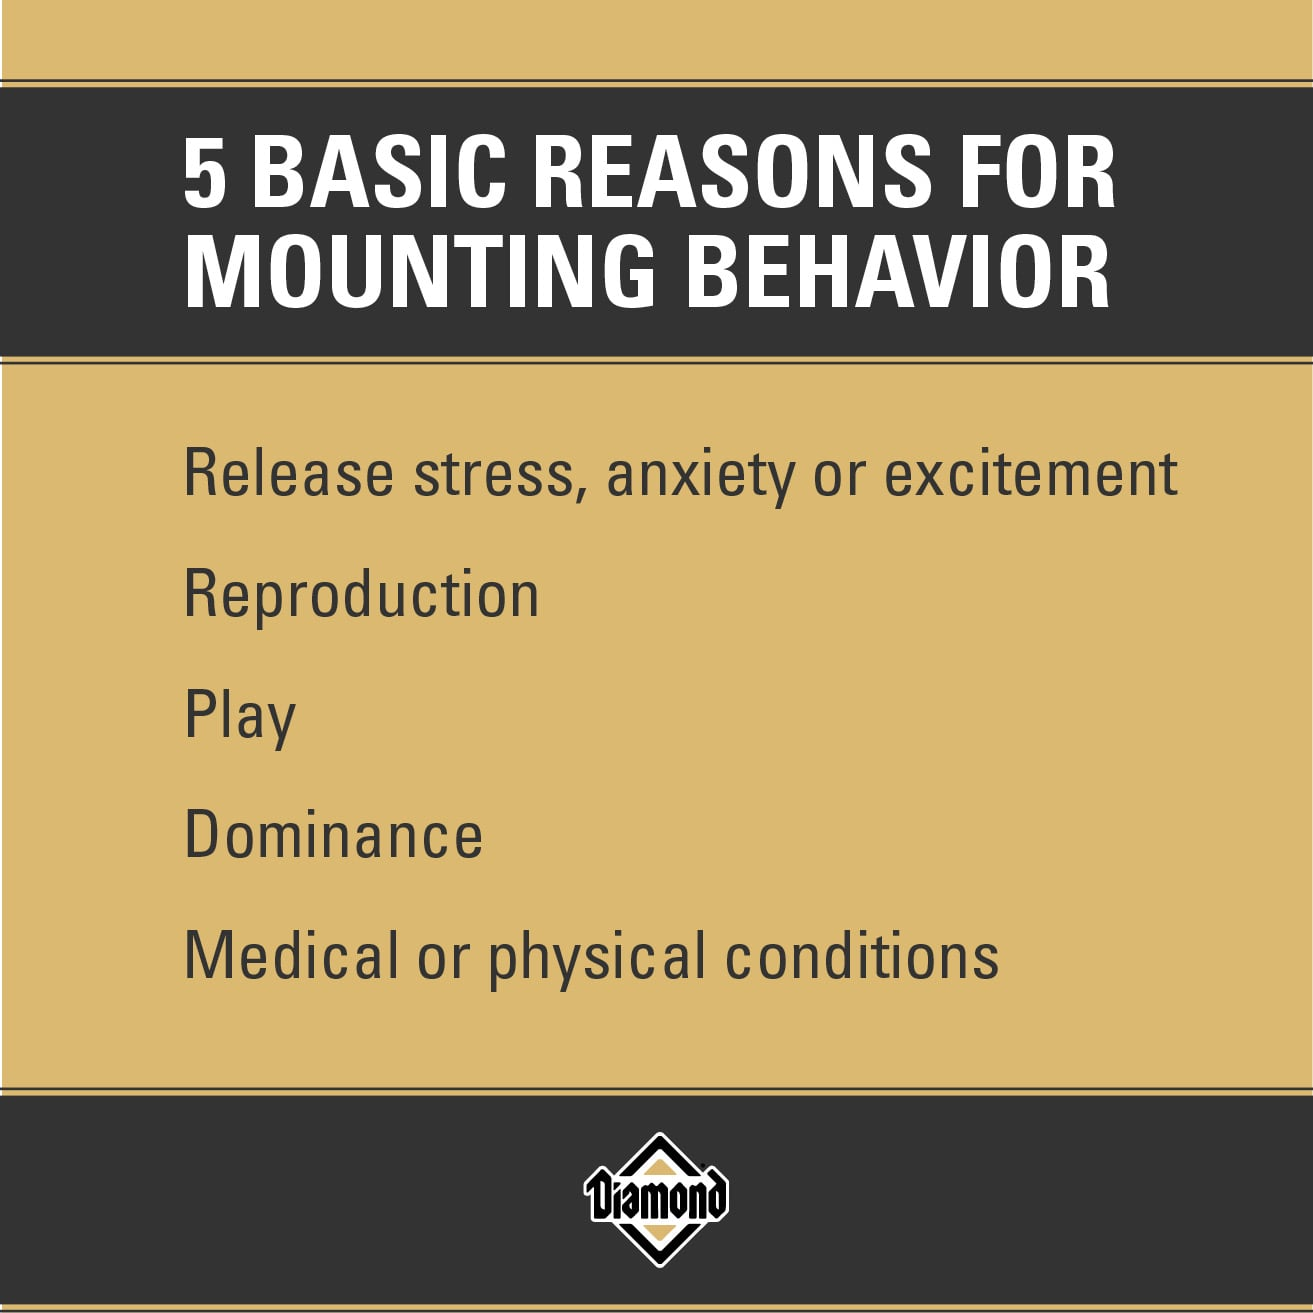 5 Basic Reasons for Mounting Behavior | Diamond Pet Foods